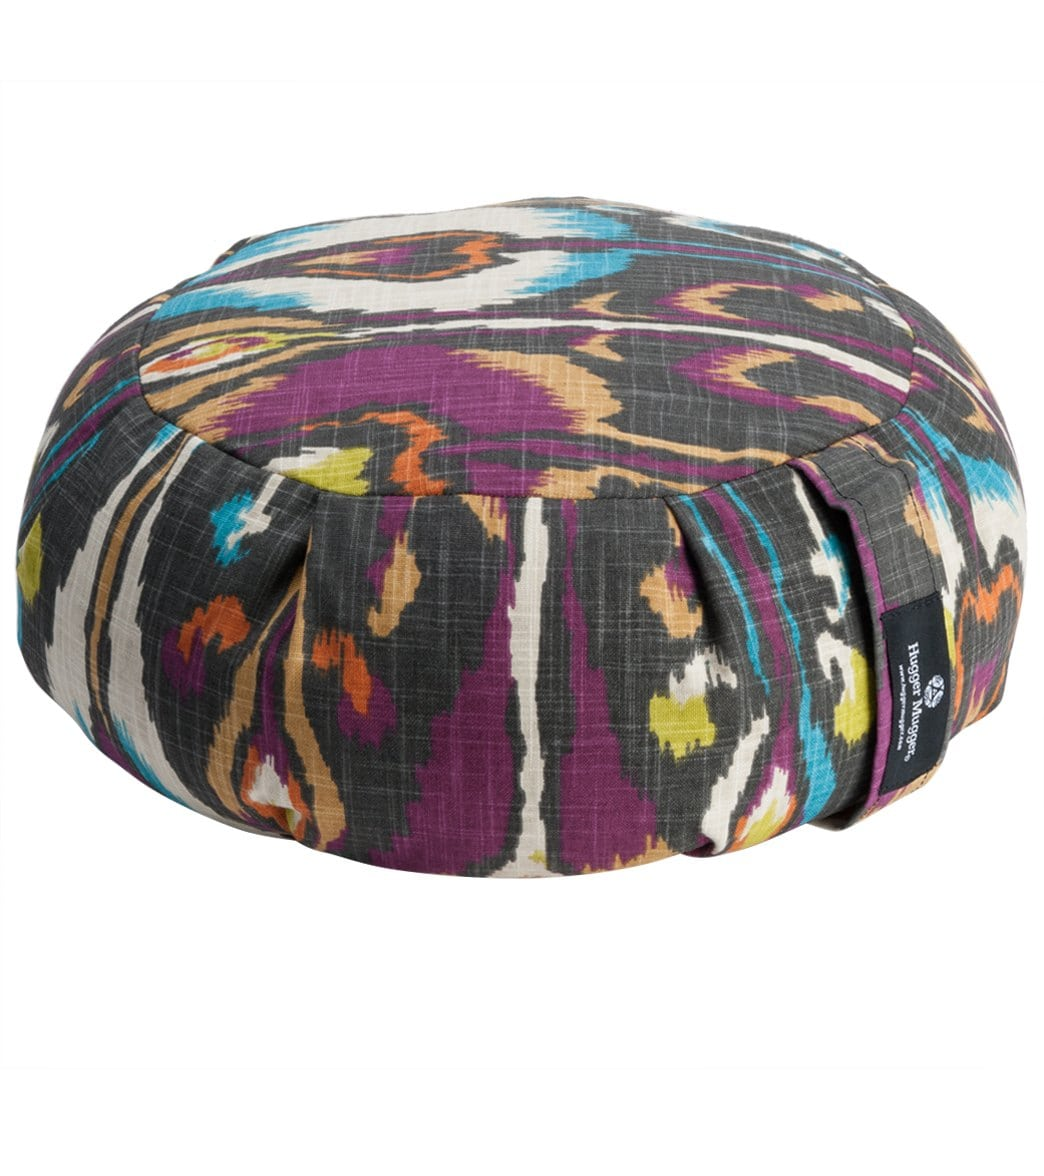 hugger mugger zafu printed yoga meditation cushion at free shipping